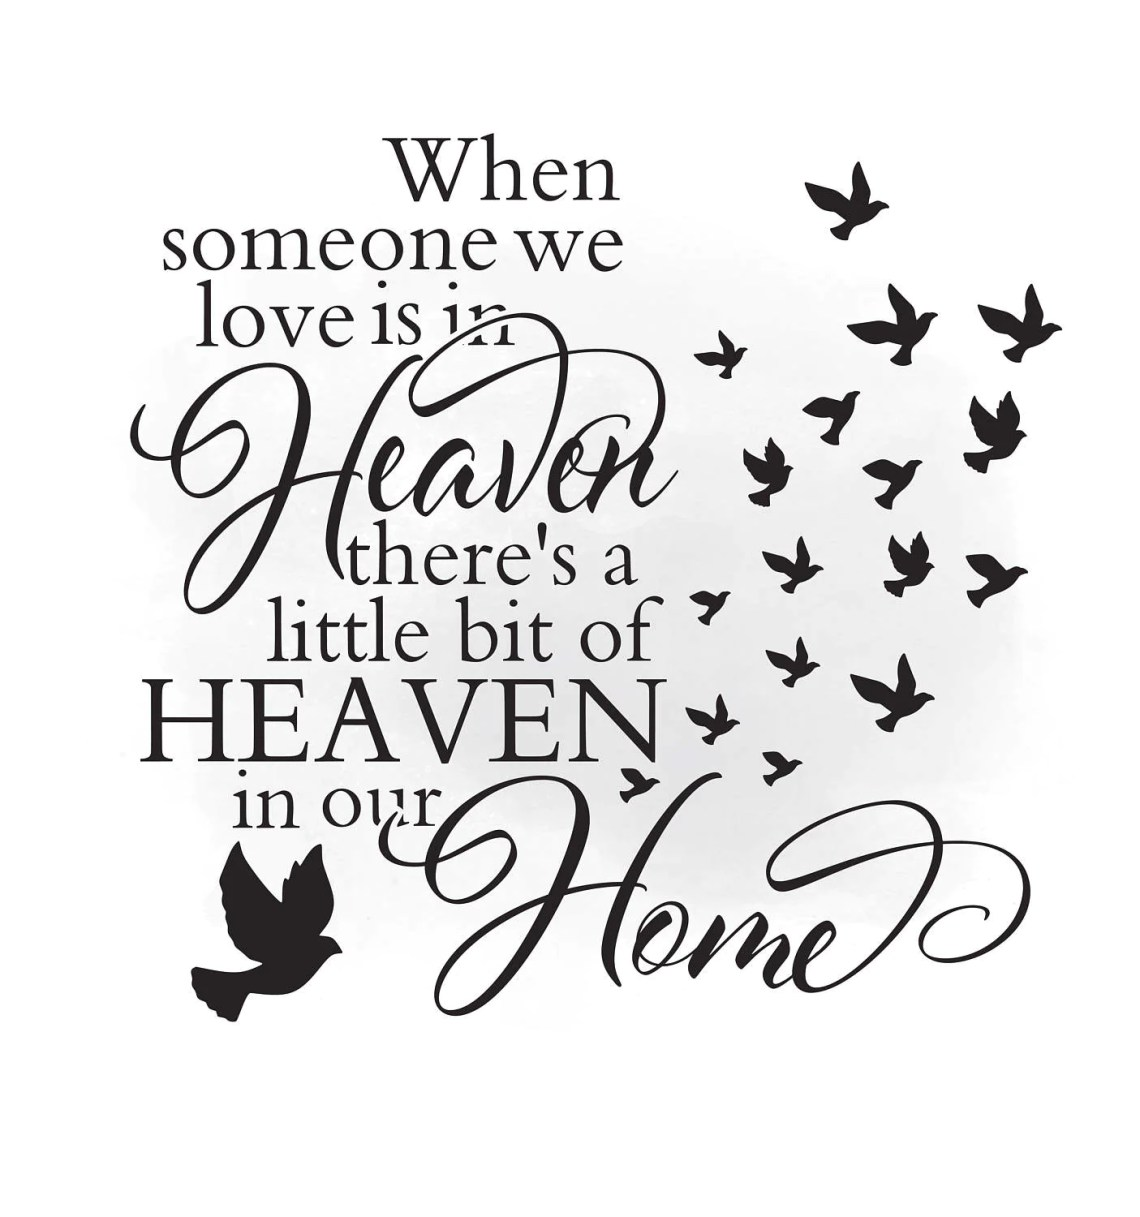 Download Heaven in our home SVG clipart, in loving memory Quote Art ...